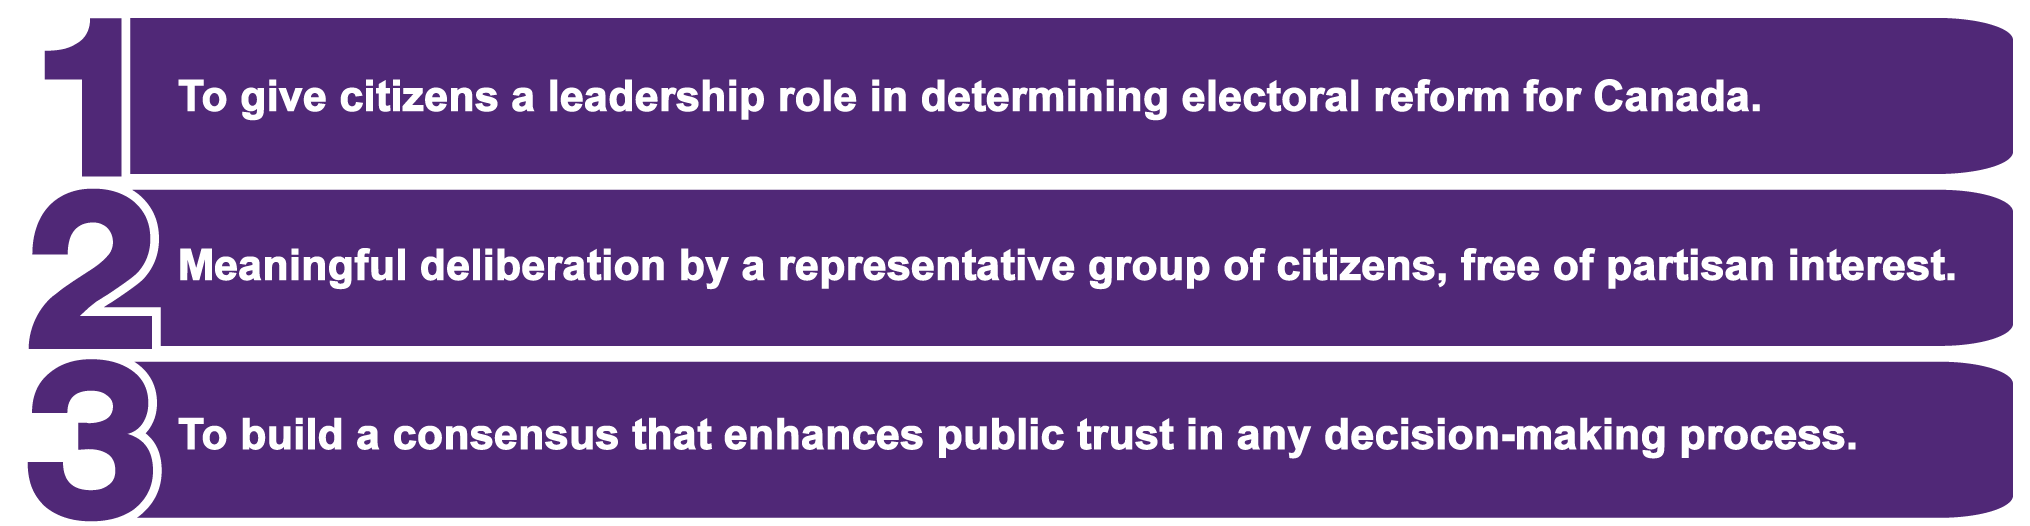 1. To give citizens a leadership role in electoral reform. 2. Meaningful deliberation by a representative group of citizens, free of partisan interest. 3. To build a consensus that enhances public trust in any decision-making process.